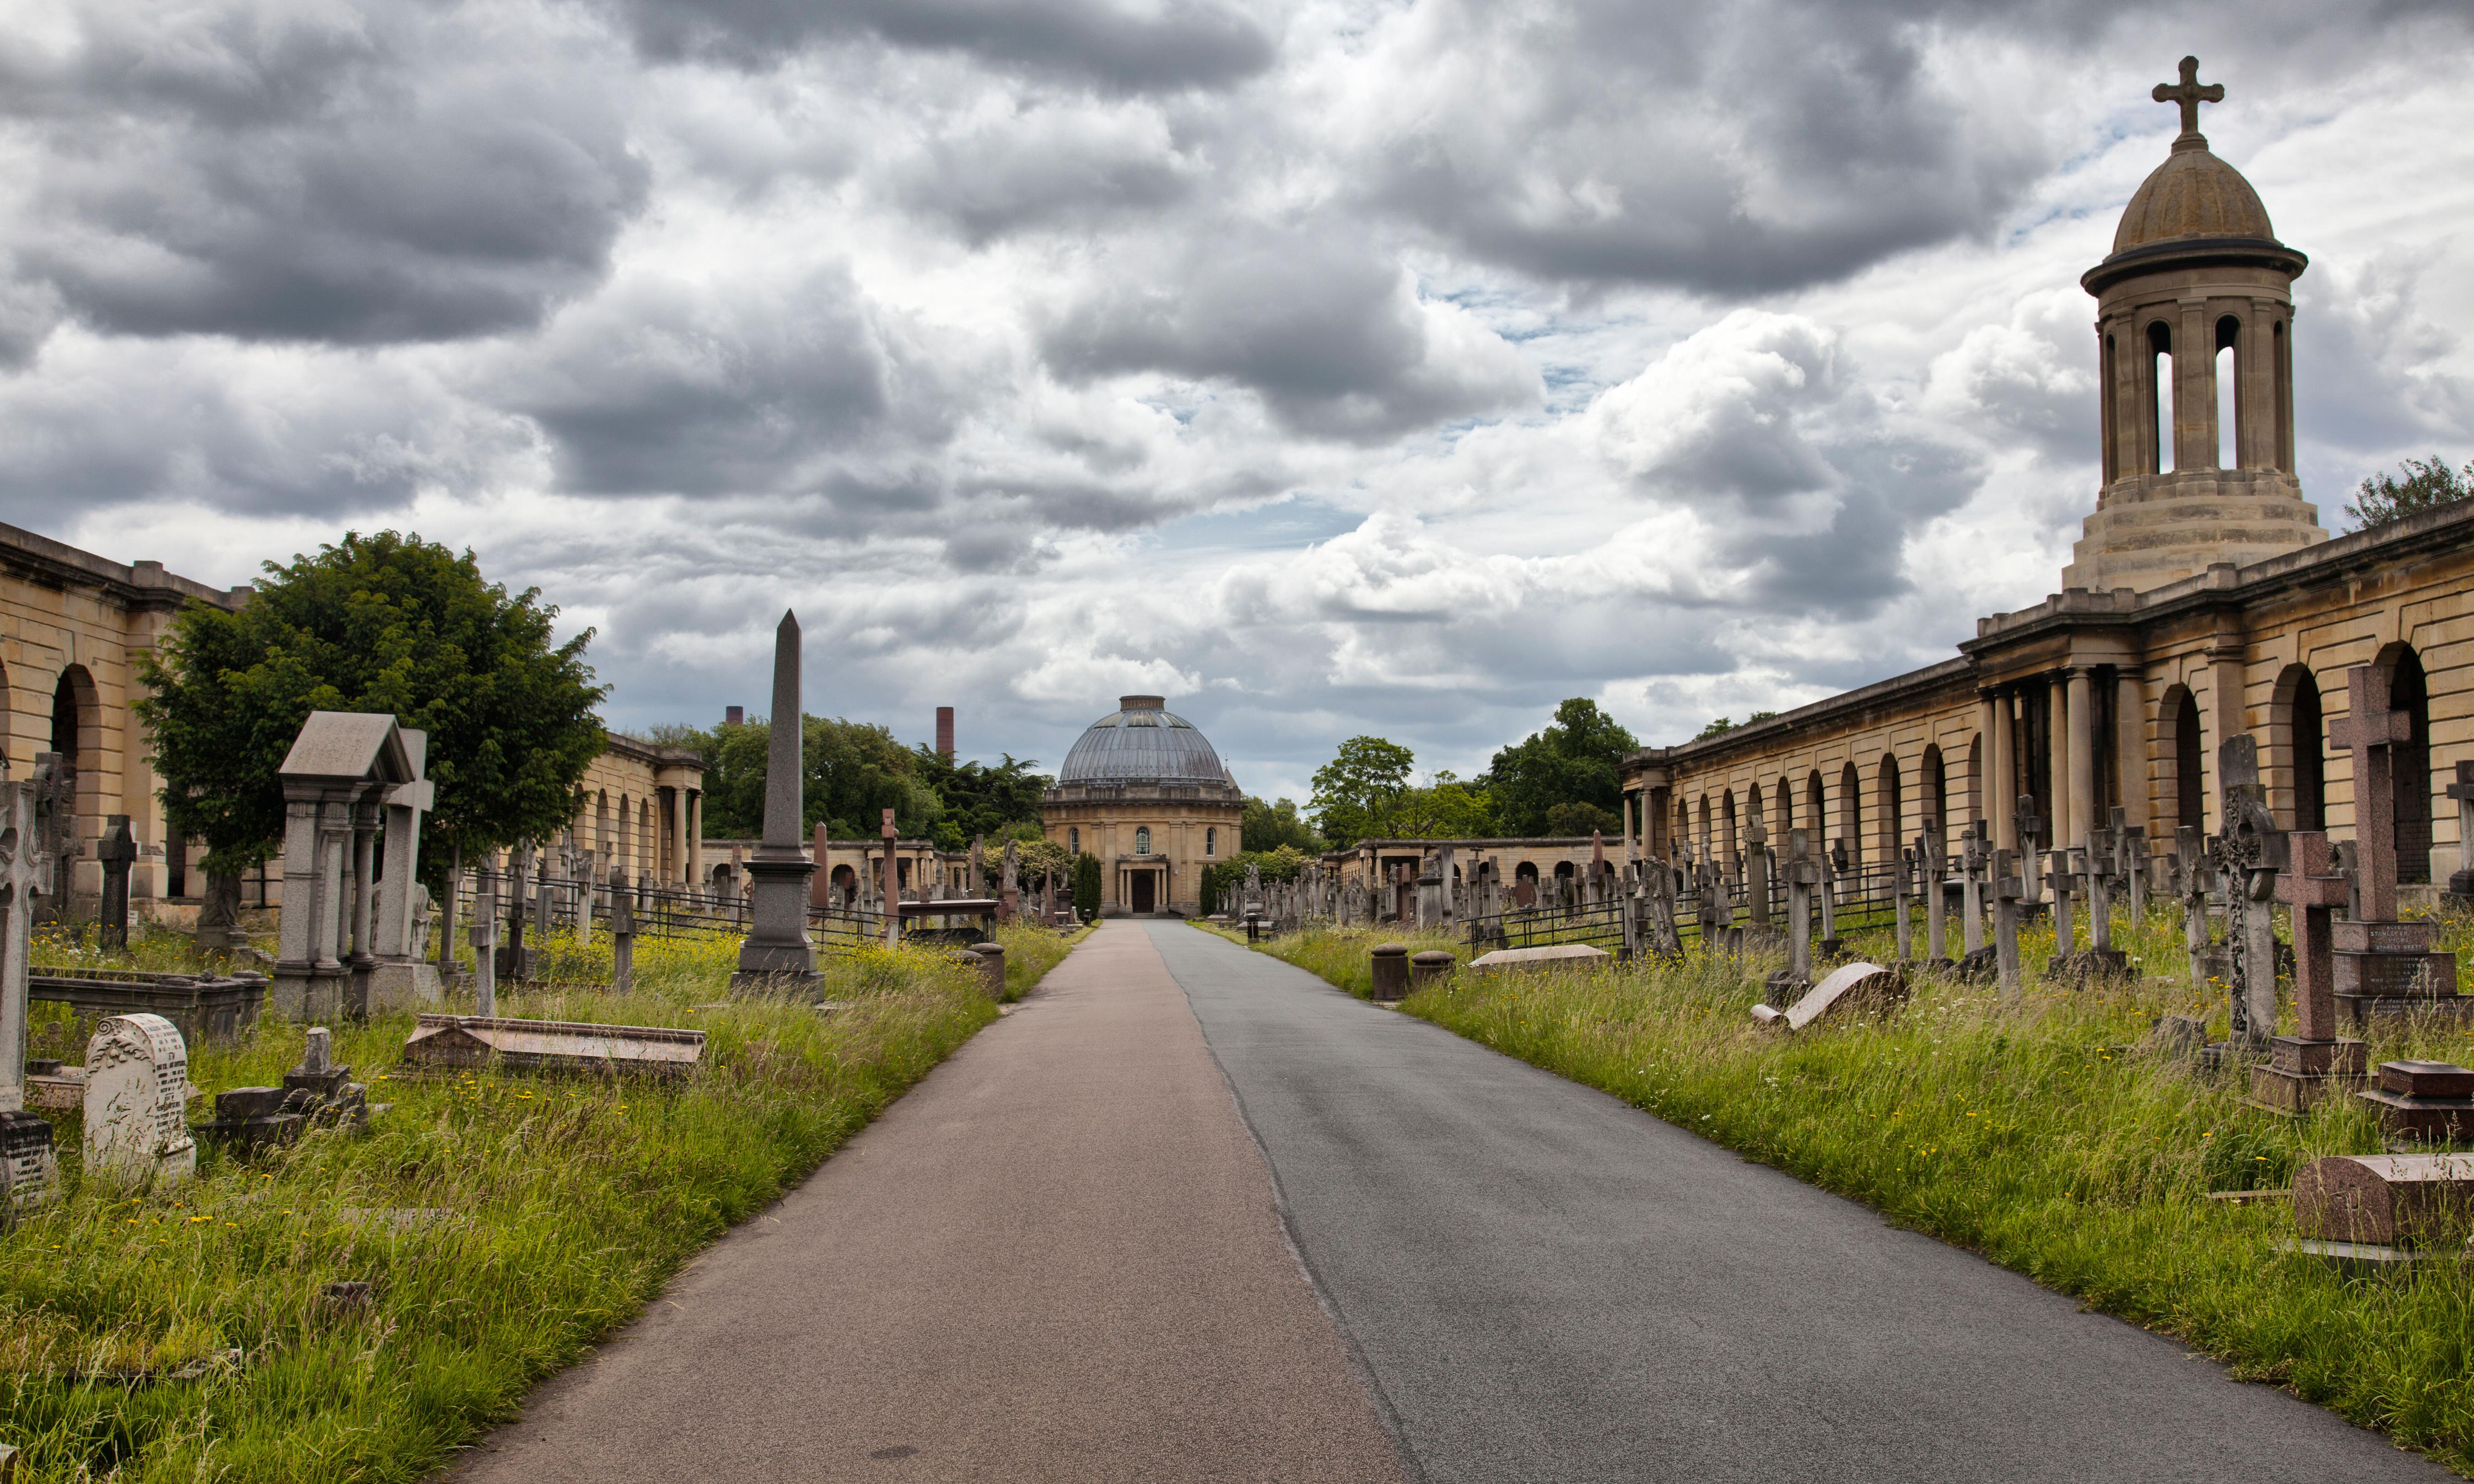 Michael Donkor on West Brompton: 'The cemetery gave me a glimpse of something rural'